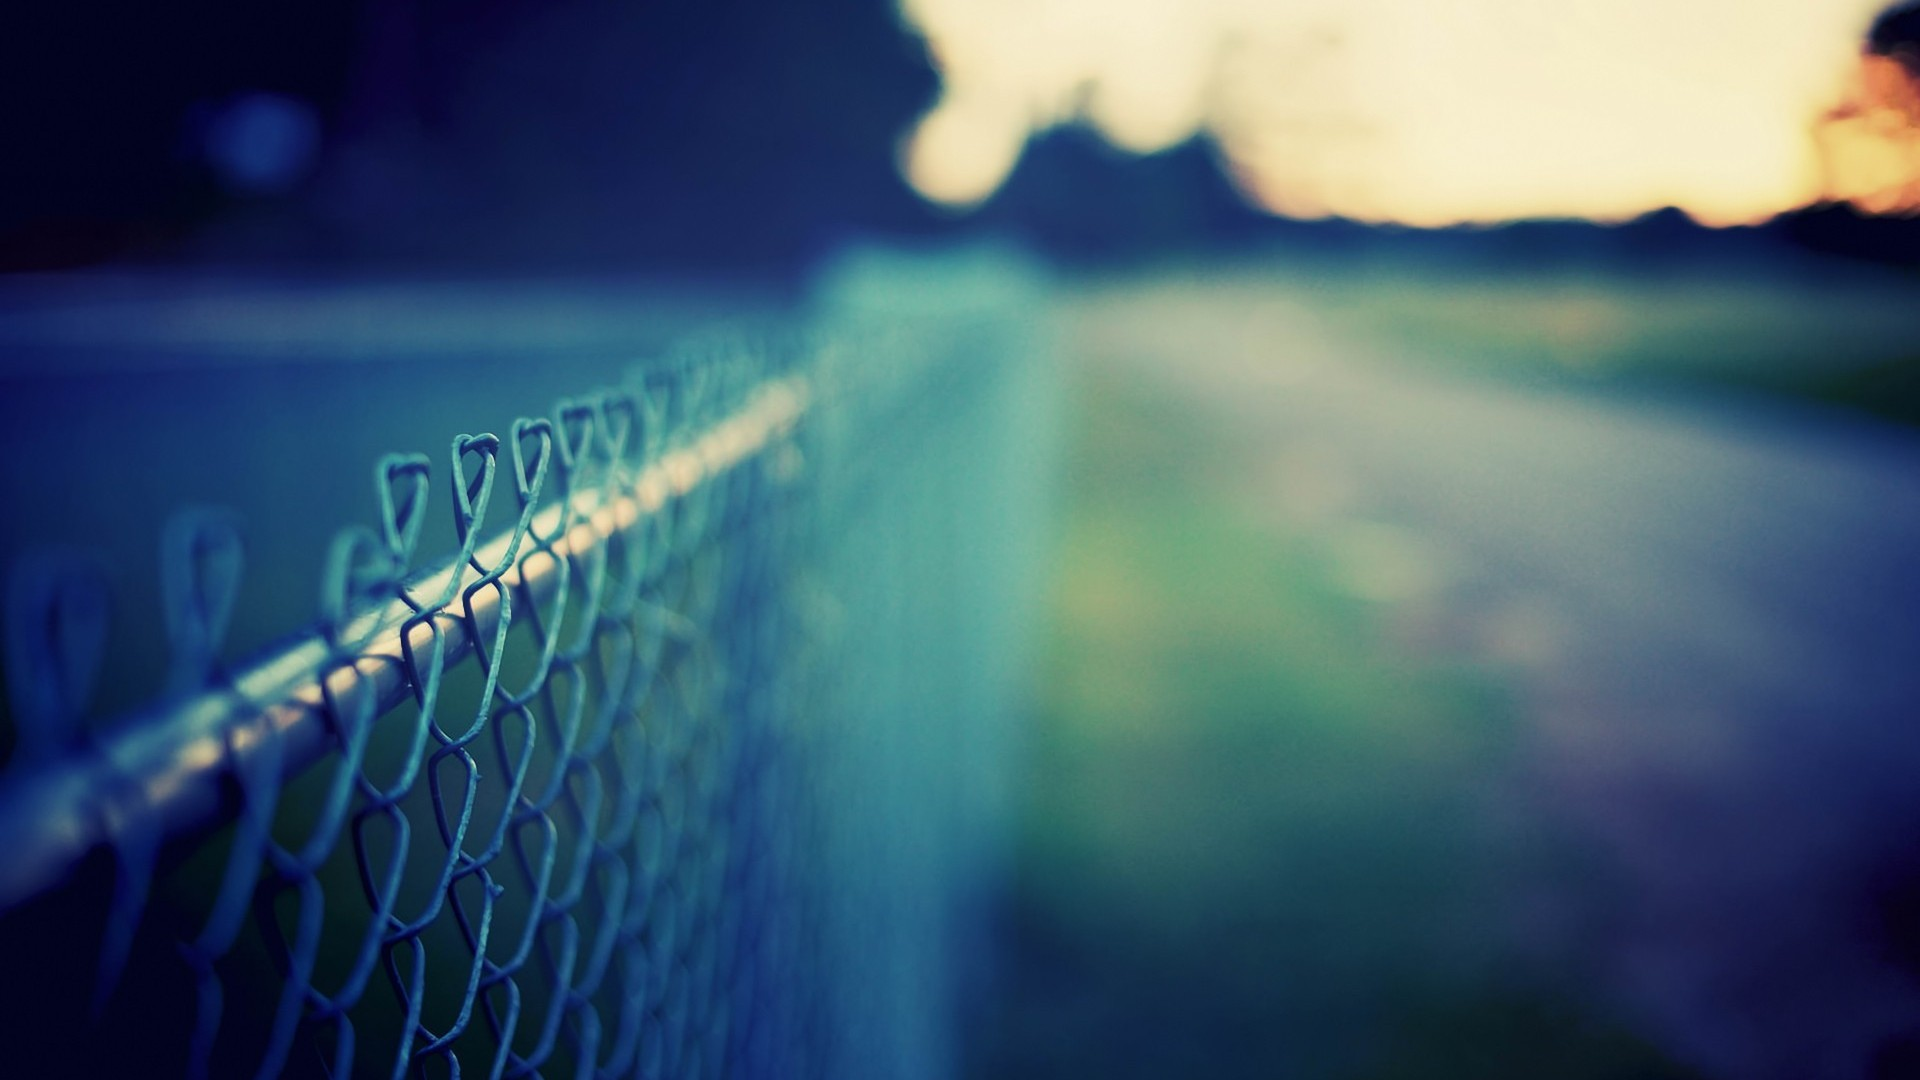 Cool Fence Wallpaper